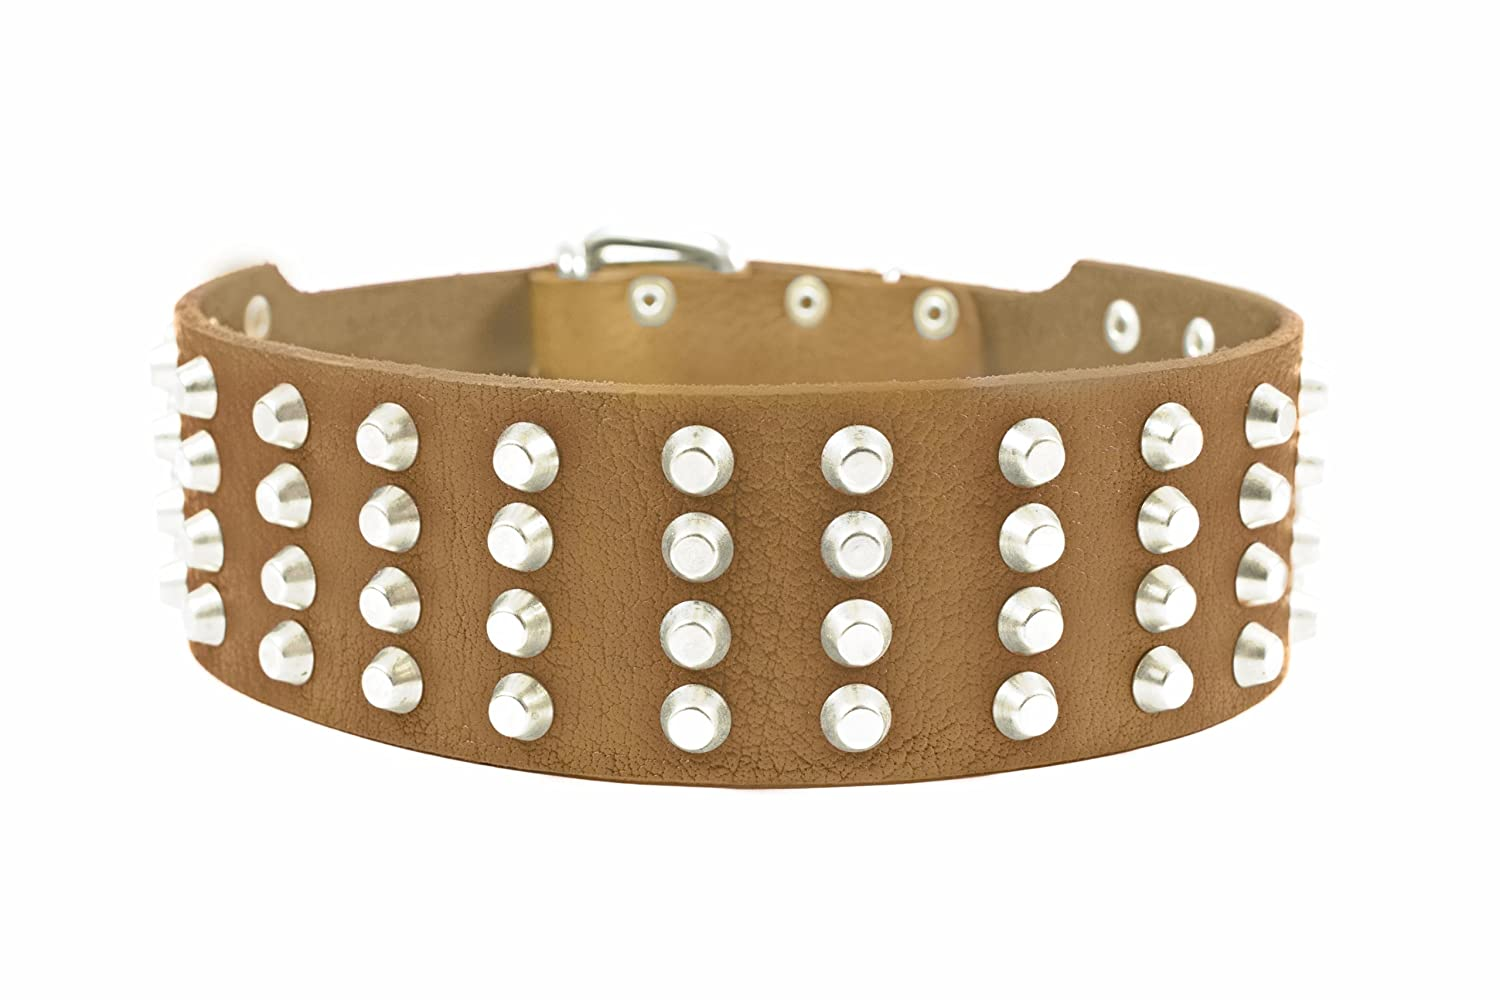 Dean and Tyler 4 Row Studs , Extra Wide Dog Collar with Strong Nickel Studs Tan Size 30-Inch by 2-1 4-Inch Fits Neck 28-Inch to 32-Inch